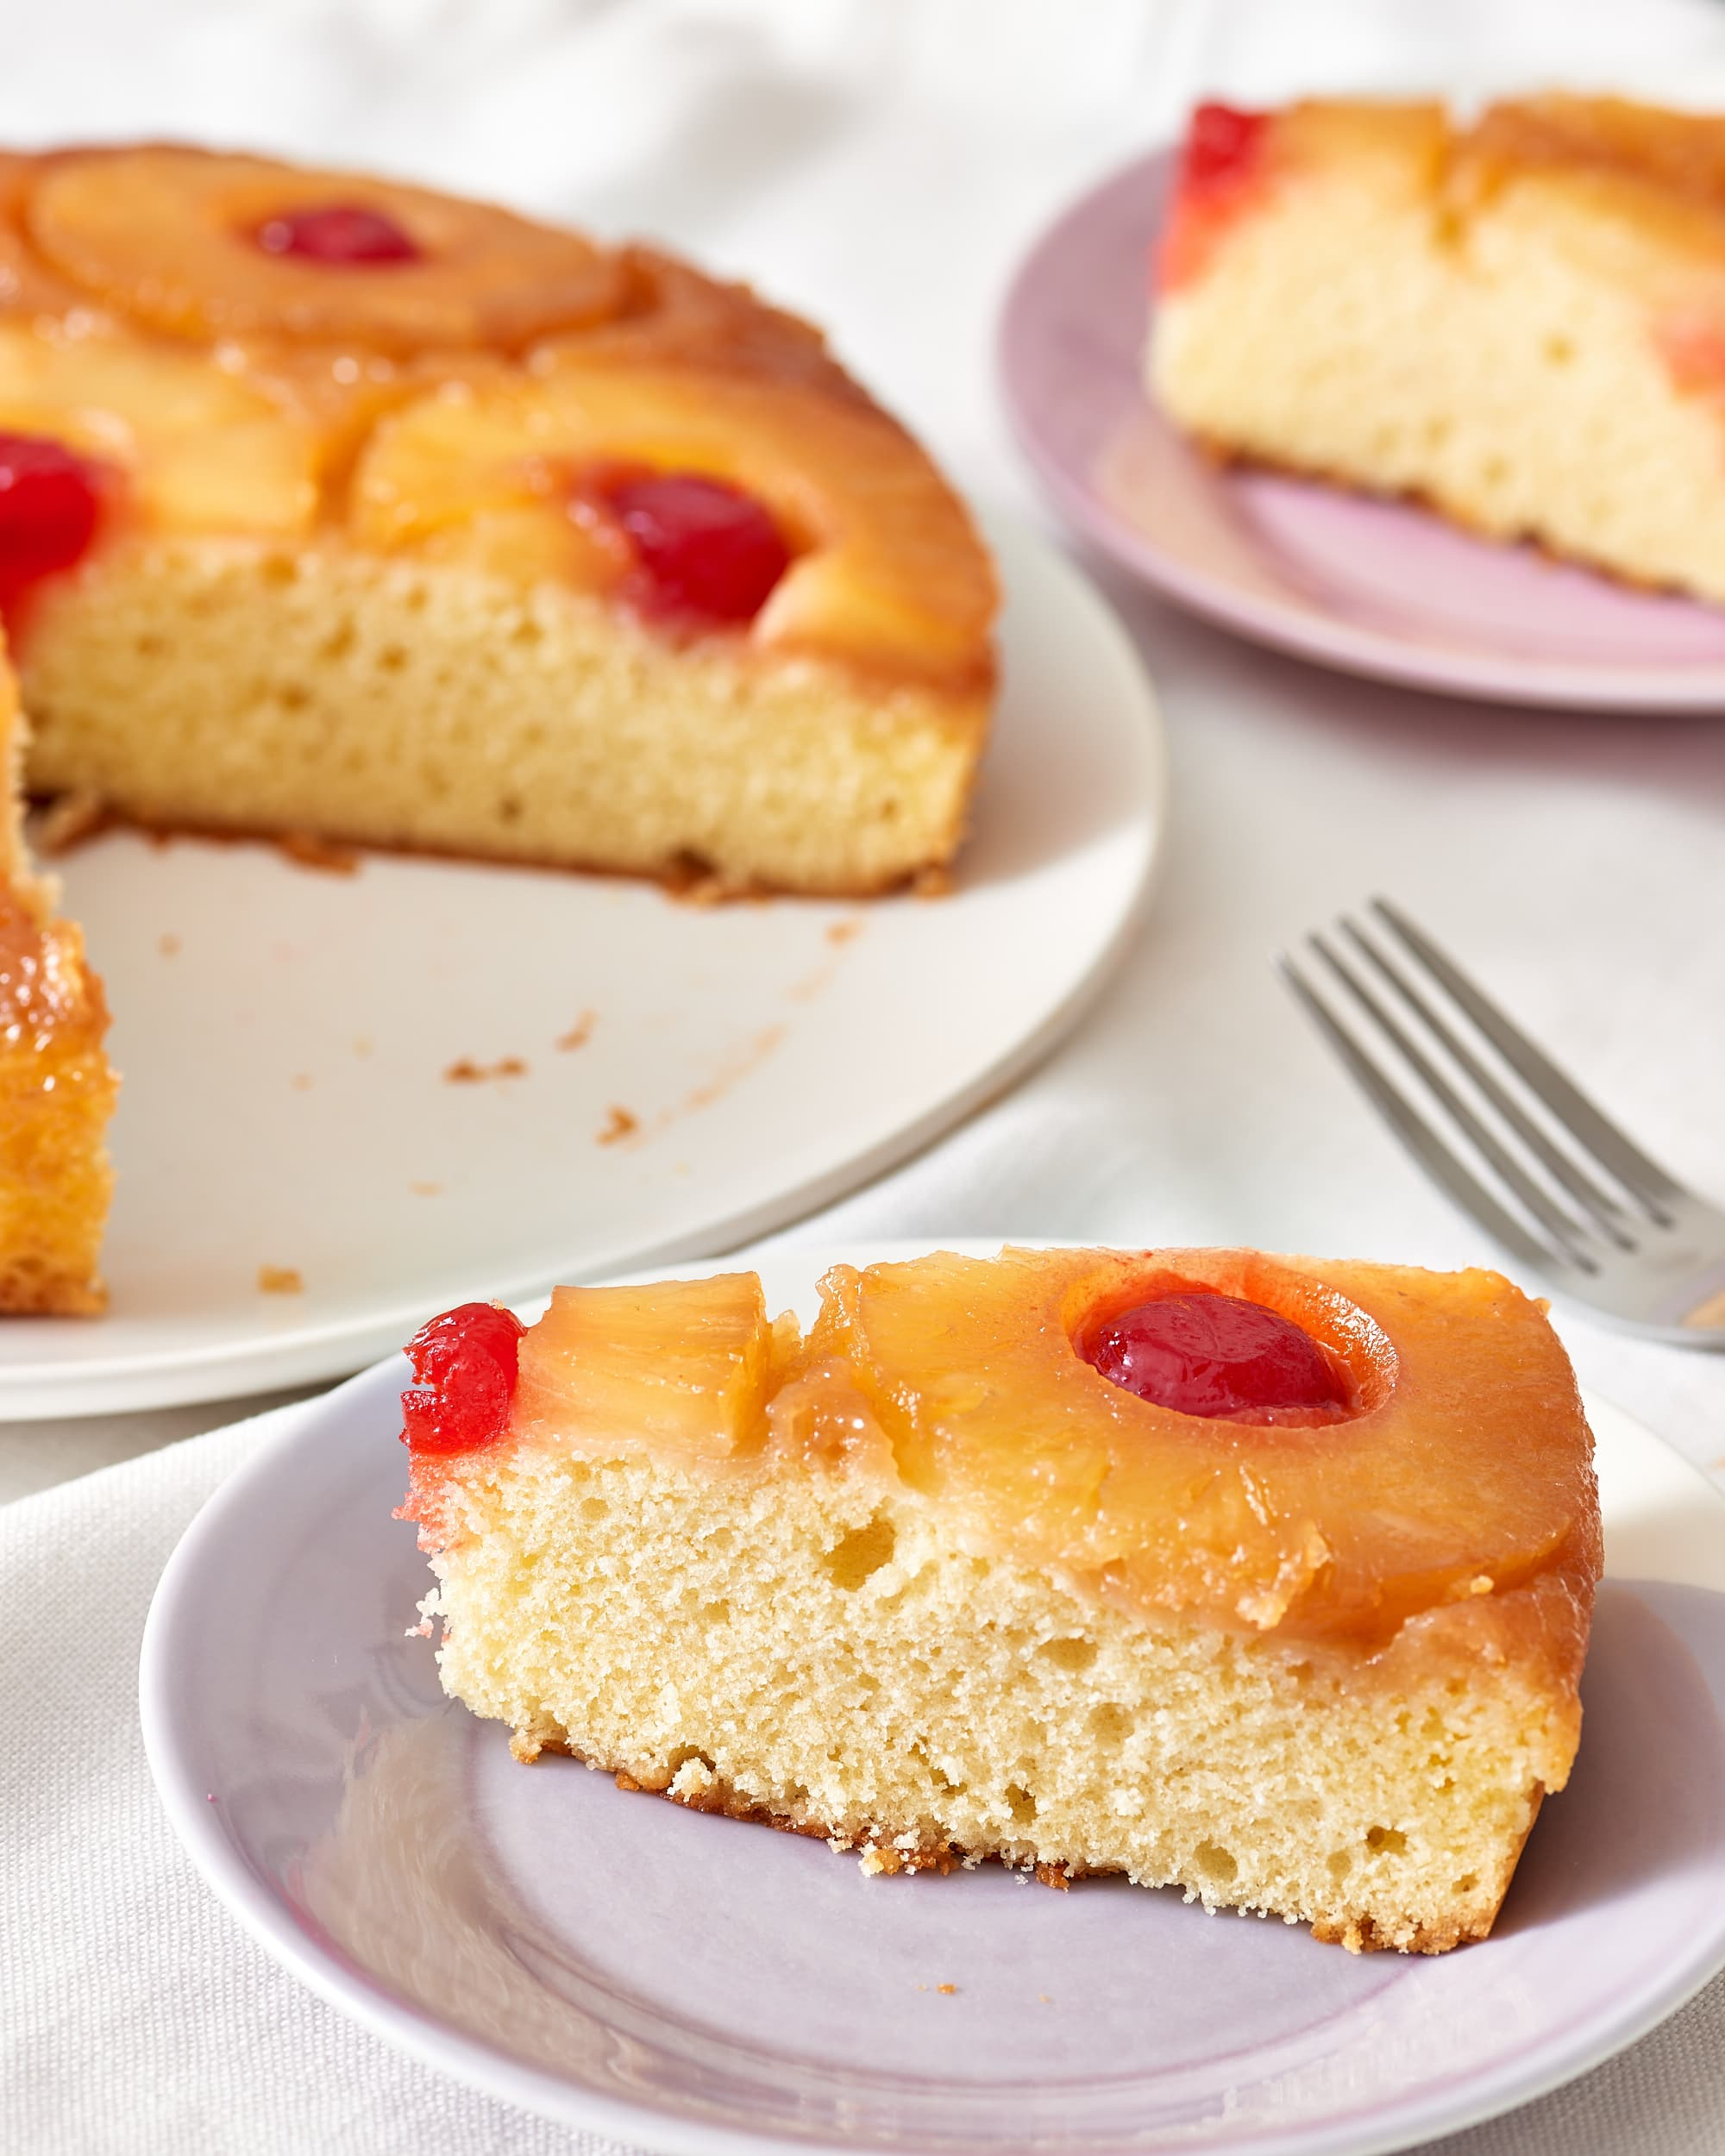 Pineapple Cake Batter From Scratch: How To Make Easy Pineapple Upside Down Cake From Scratch